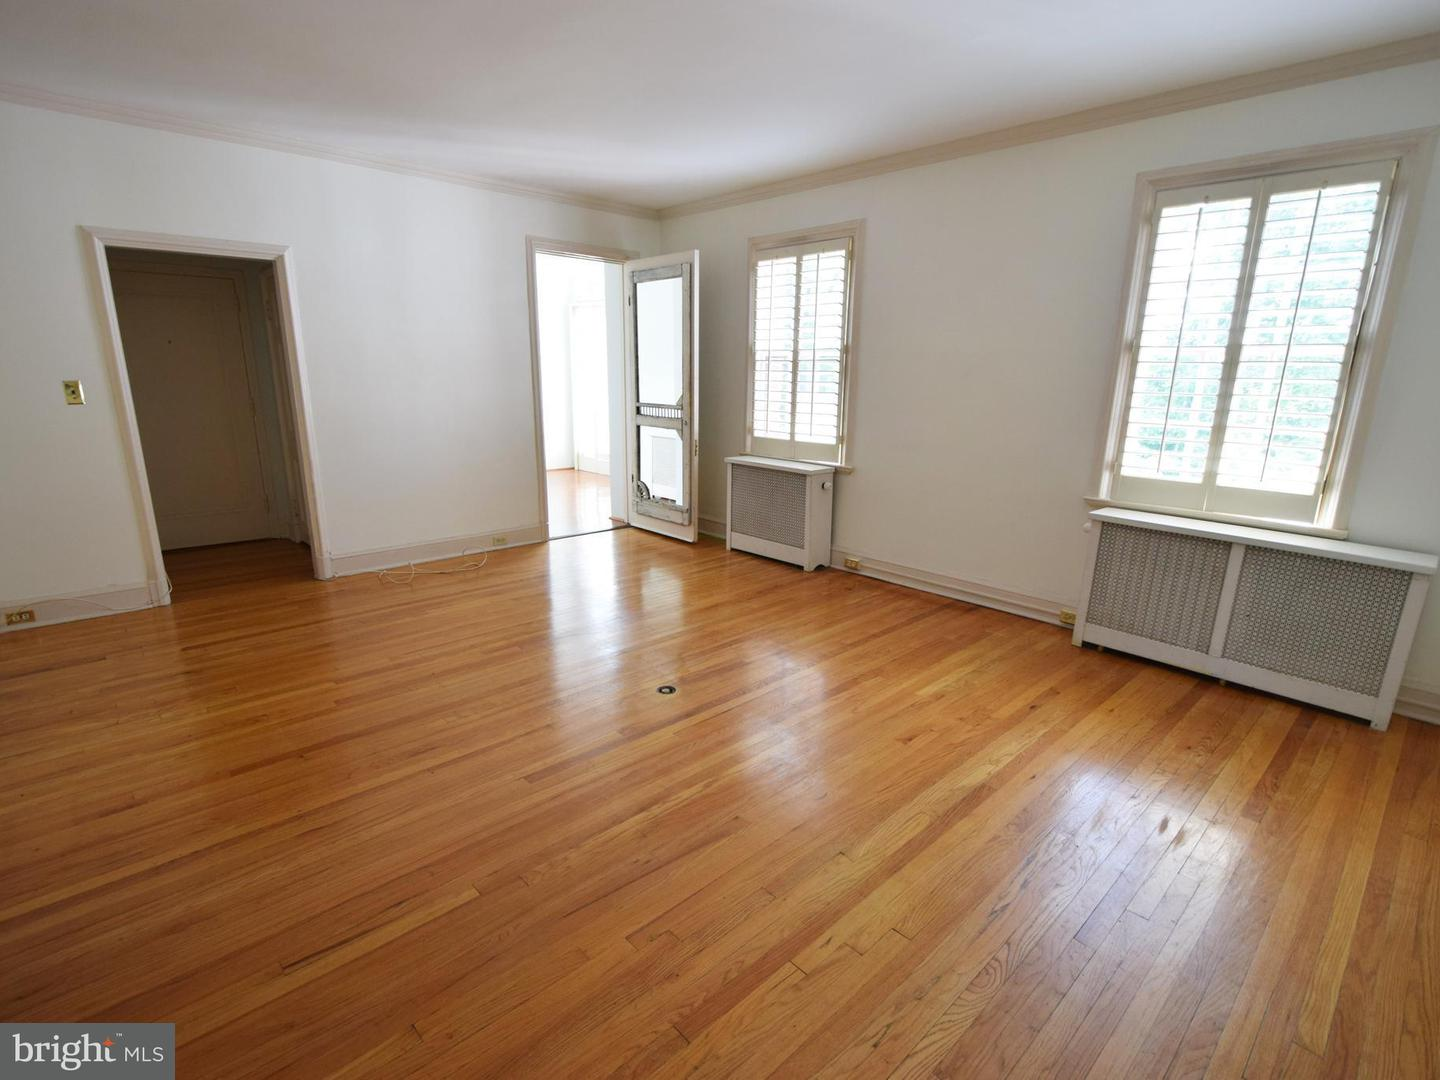 Other Residential for Rent at 6 Upland Rd #k5 Baltimore, Maryland 21210 United States